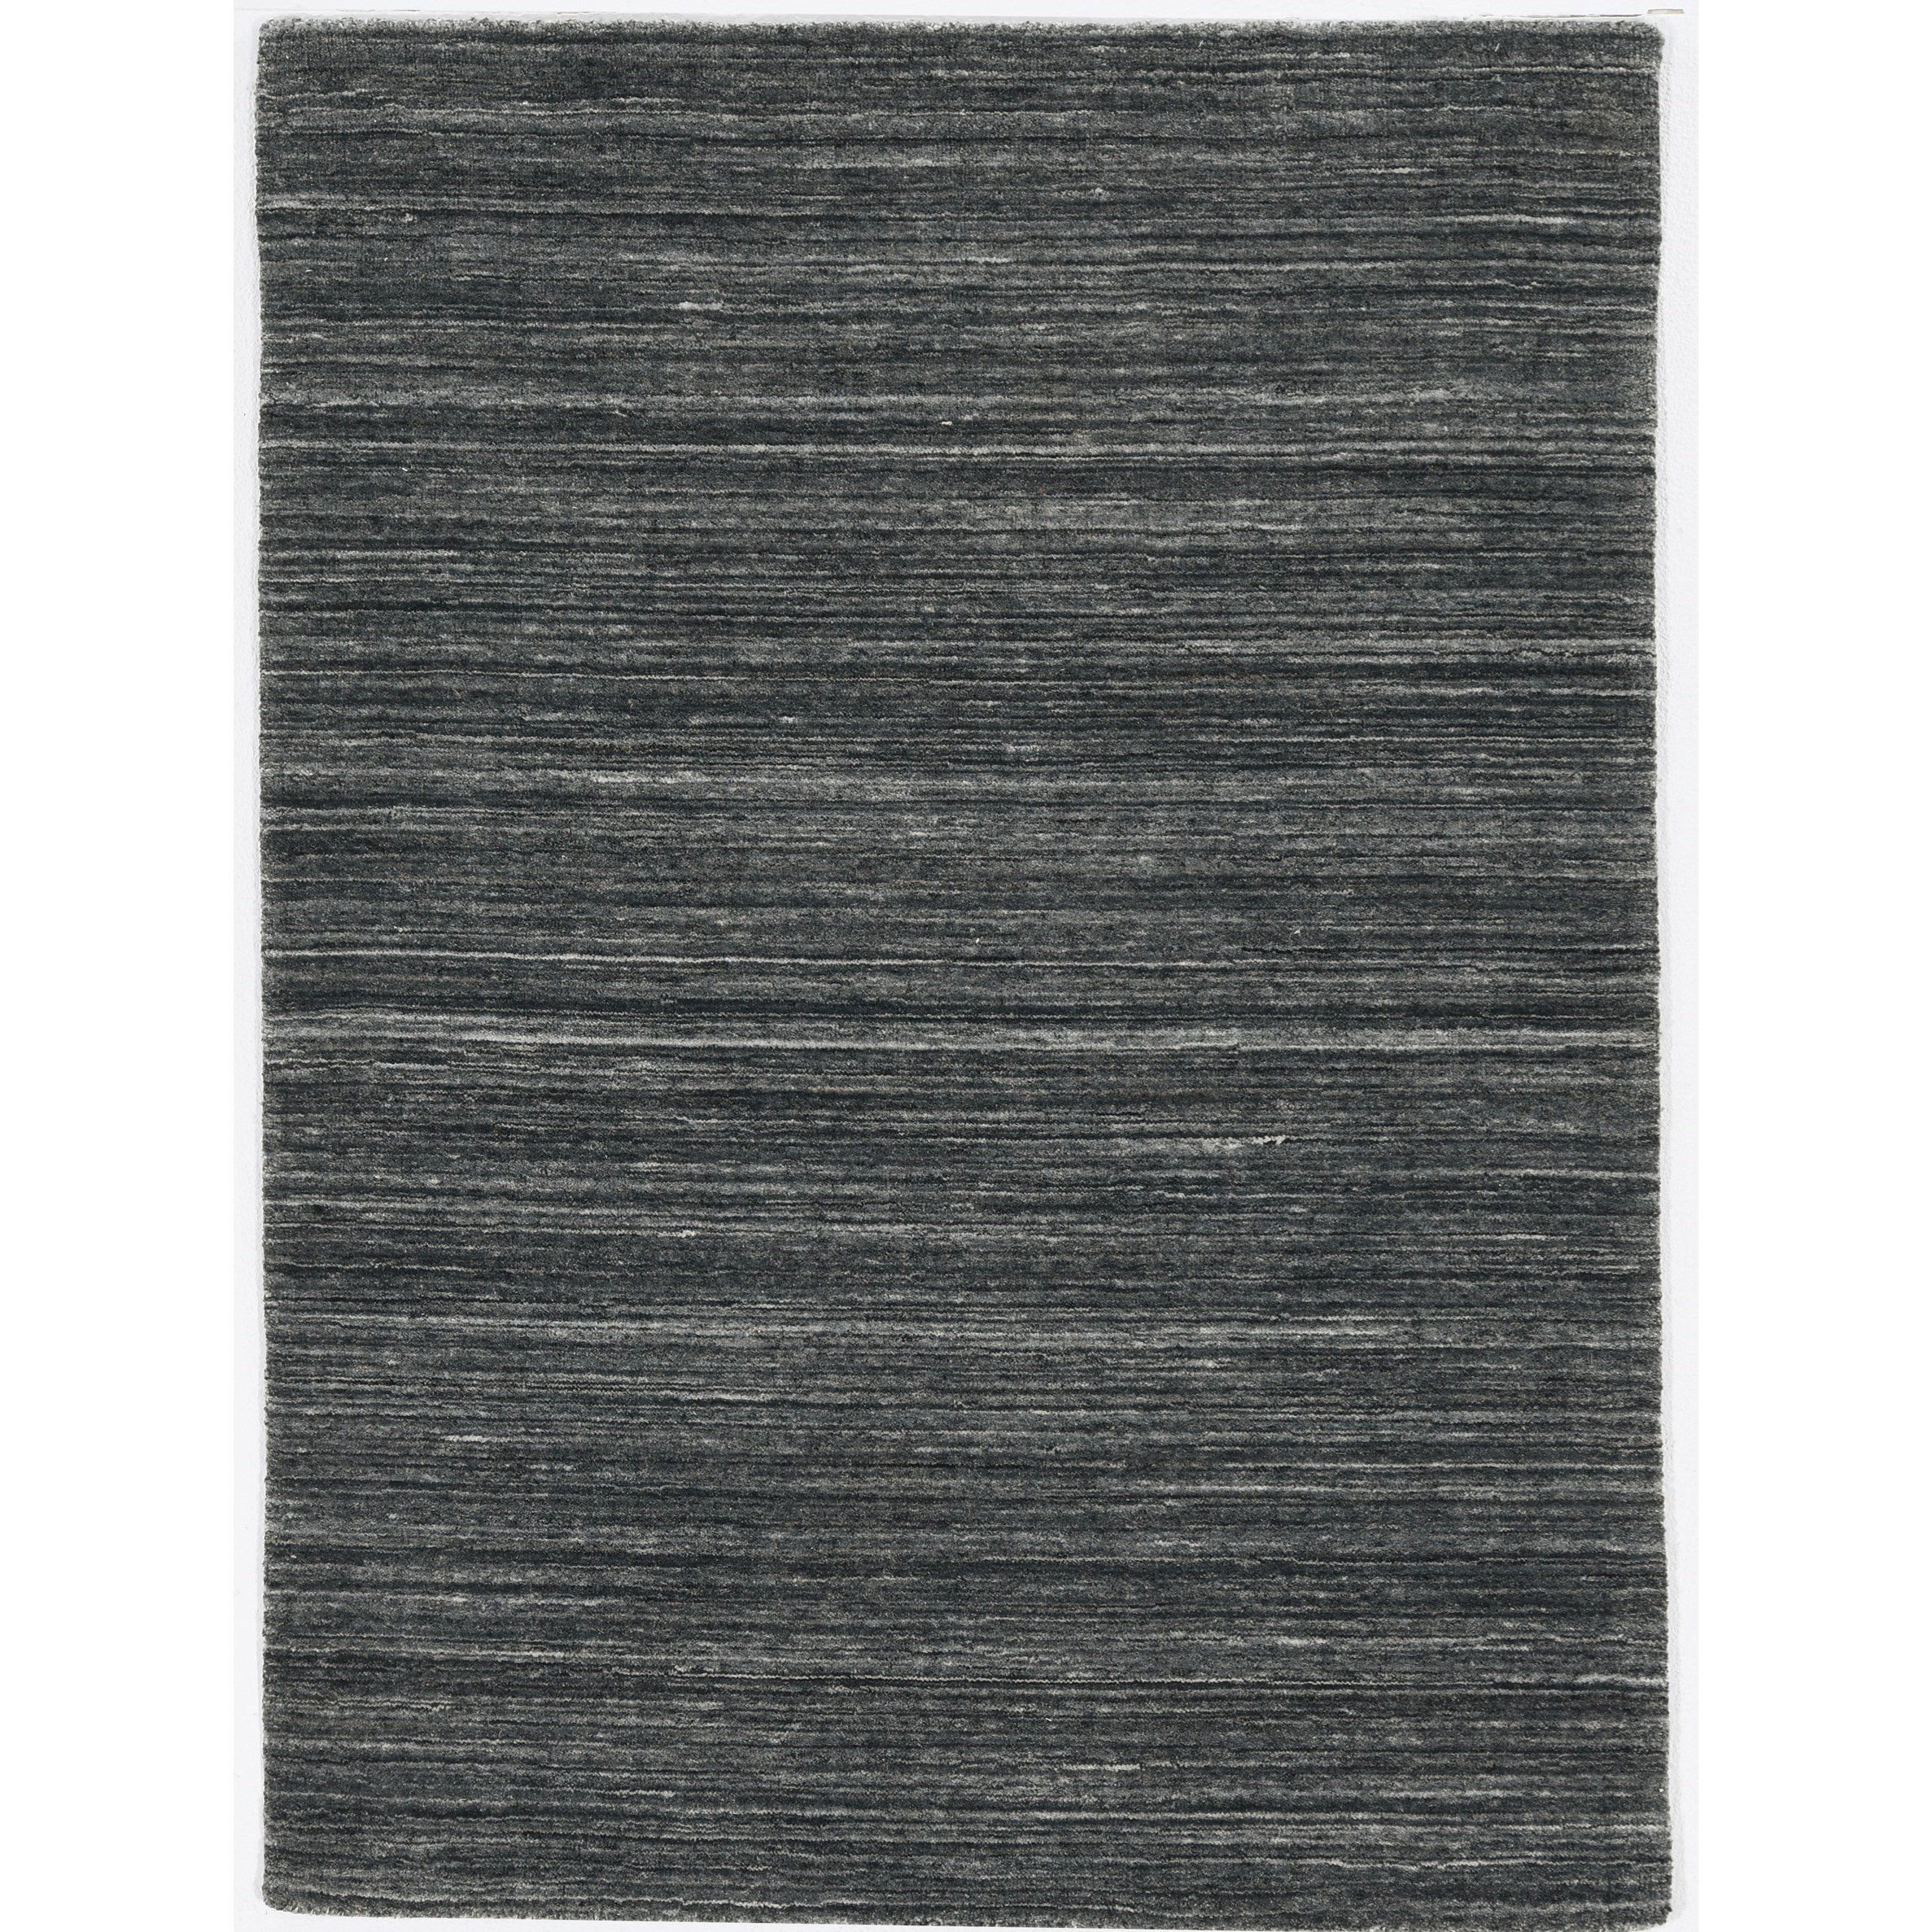 Dune 9' x 12' Charcoal Villa Rug by Kas at Darvin Furniture